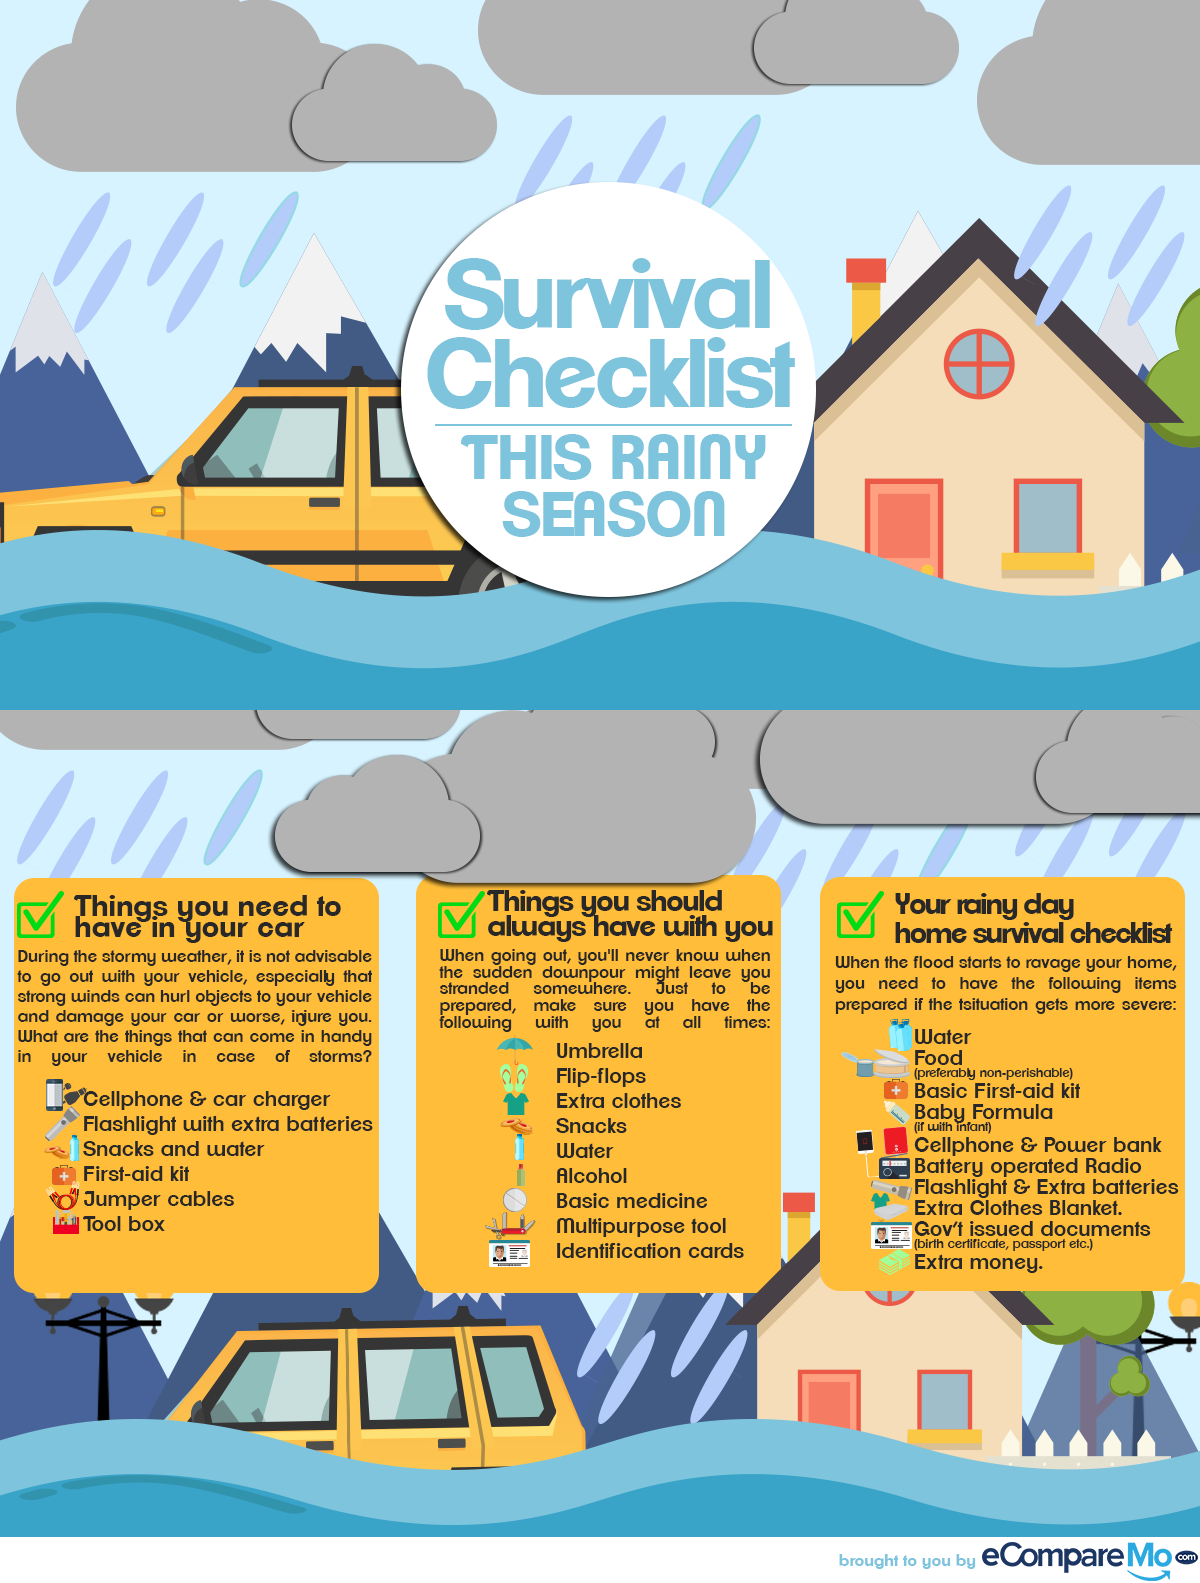 INFOGRAPHIC: Survival Checklist This Rainy Season